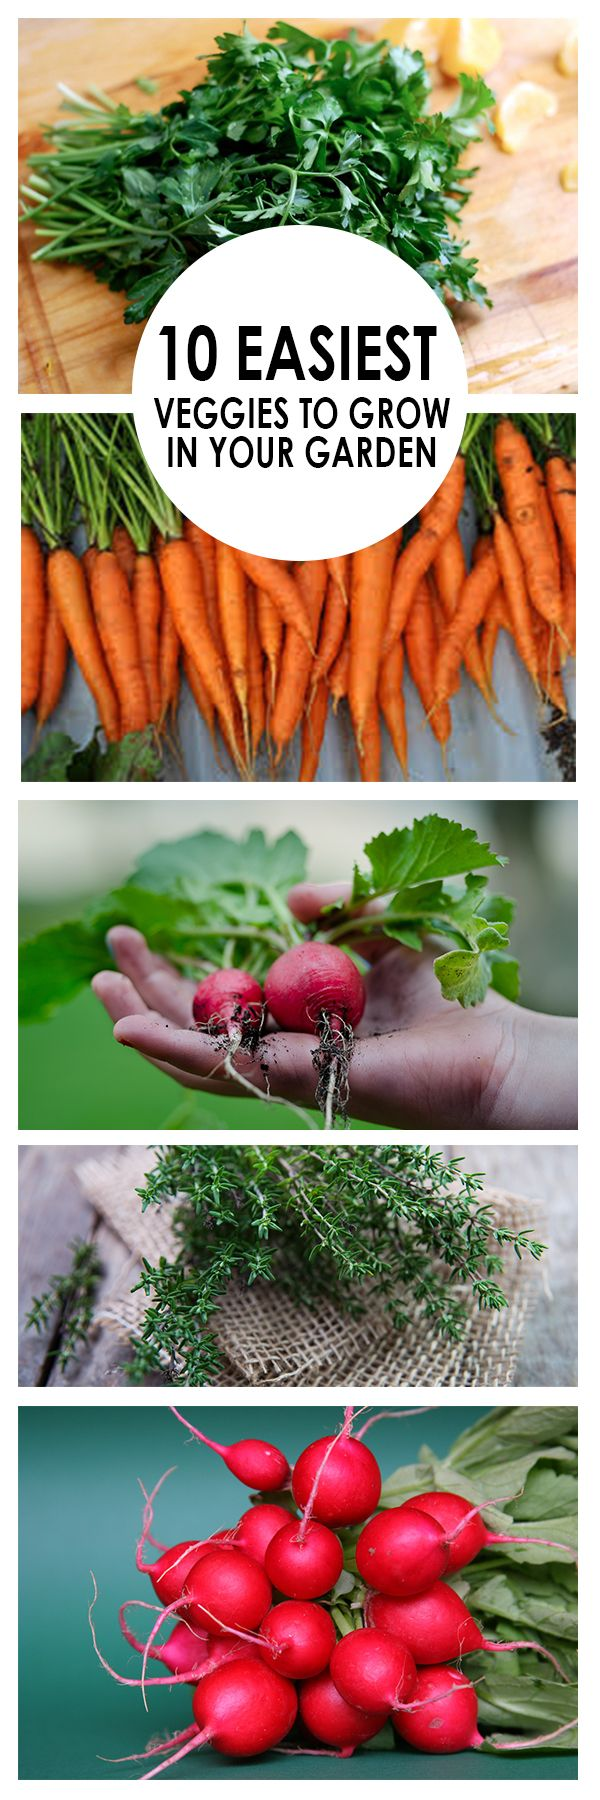 Best 25+ Growing gardens ideas on Pinterest